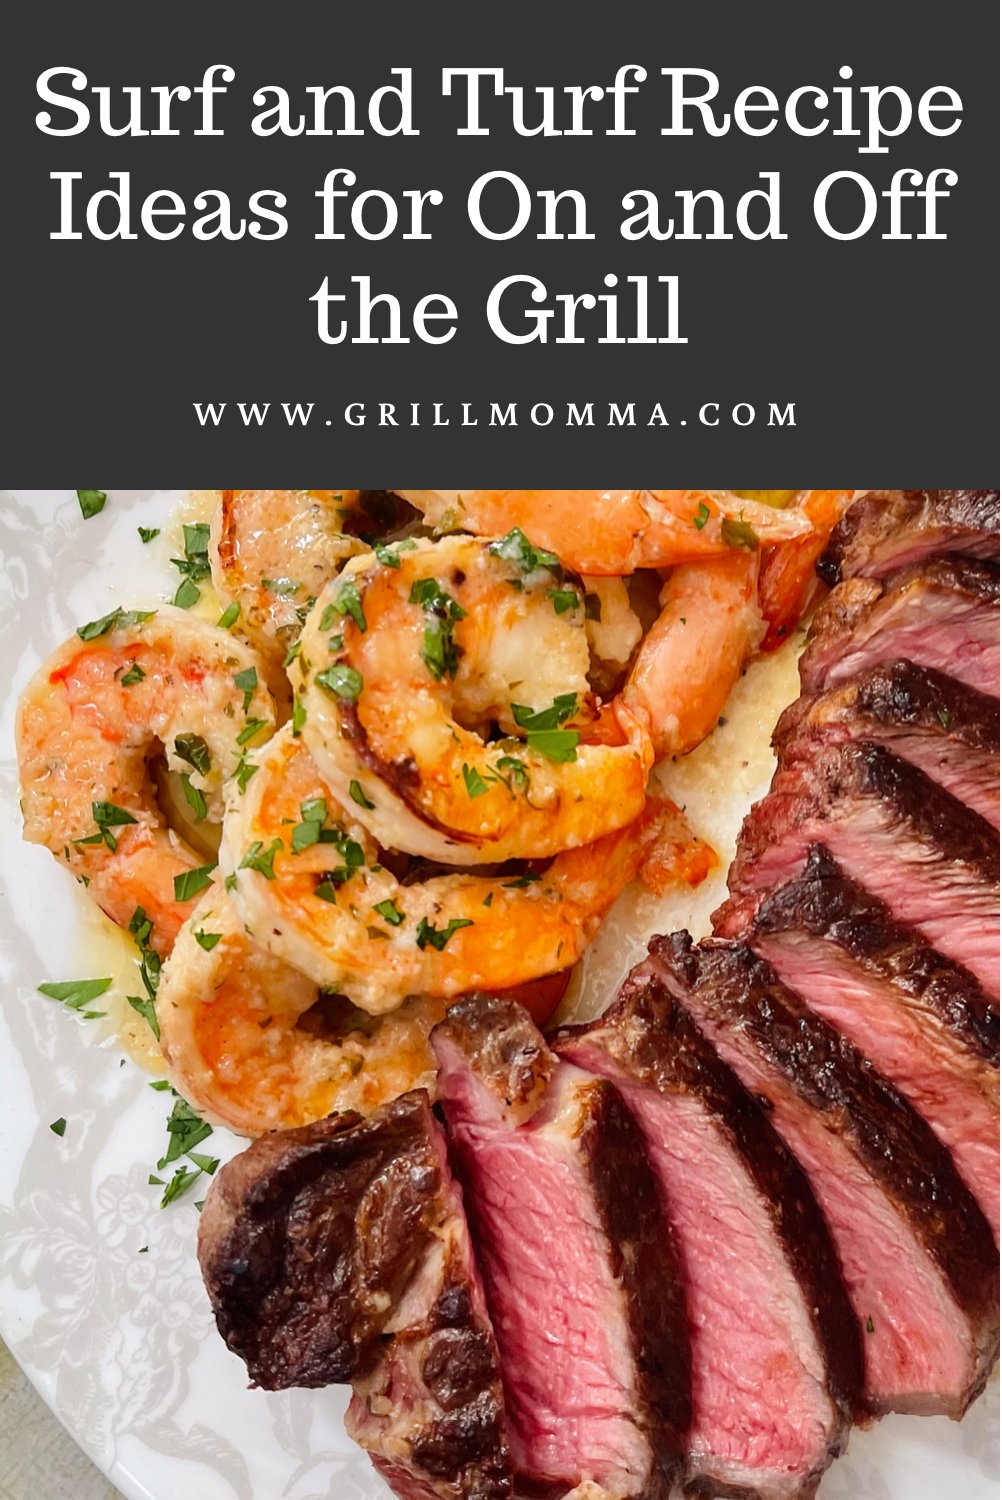 Surf and Turf Recipe Ideas for On and Off the Grill